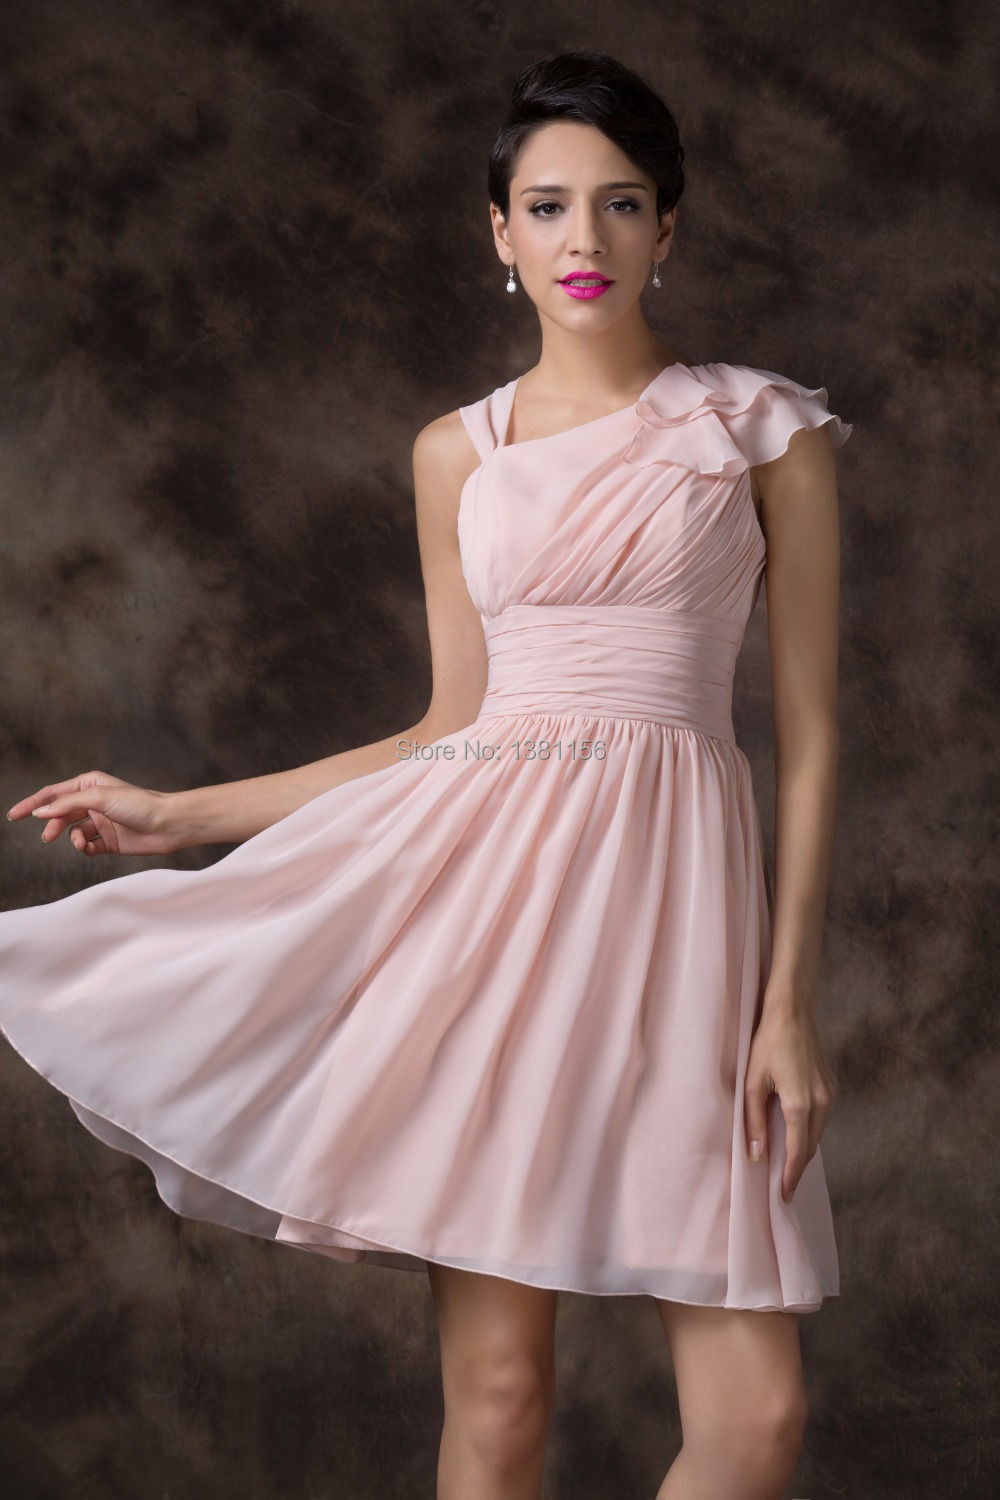 f833c4128e3 Grace Karin Sexy Short Formal Prom Dress Light Pink Chiffon Cocktail Party  Dress Women Sleeveless Summer Dress CL6221